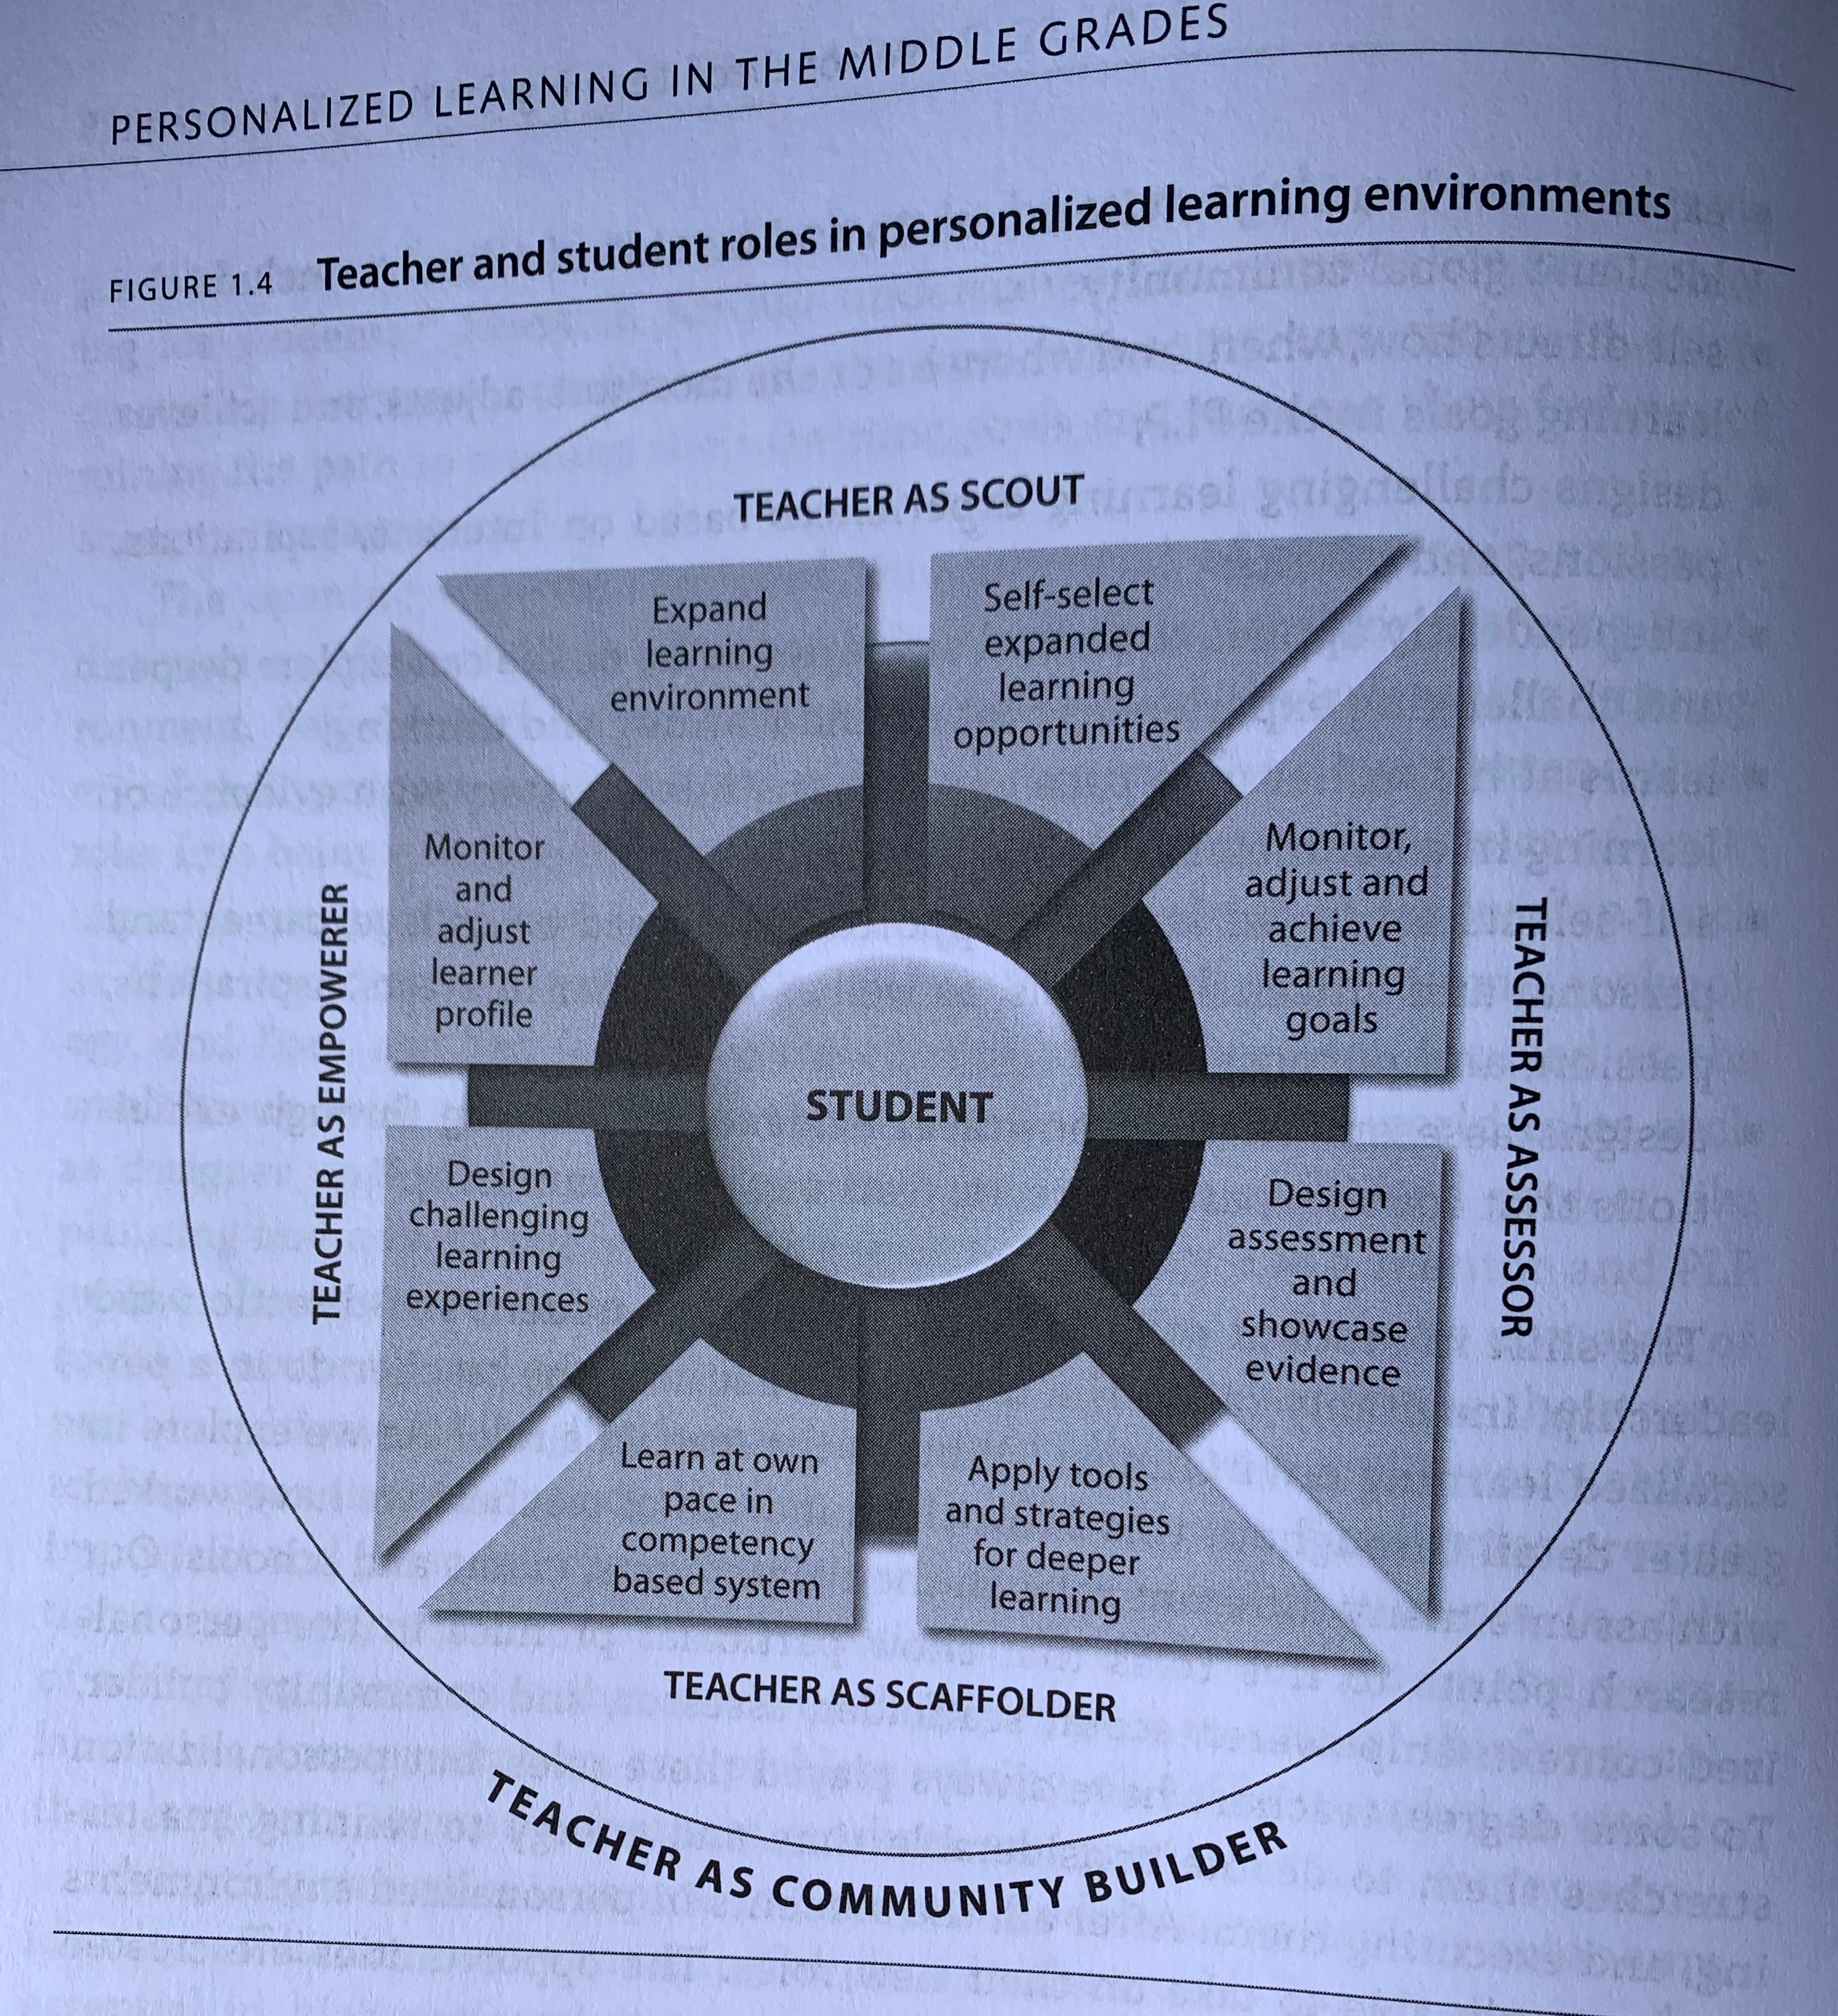 Page 38 of Personalized Learning in the Middle Grades